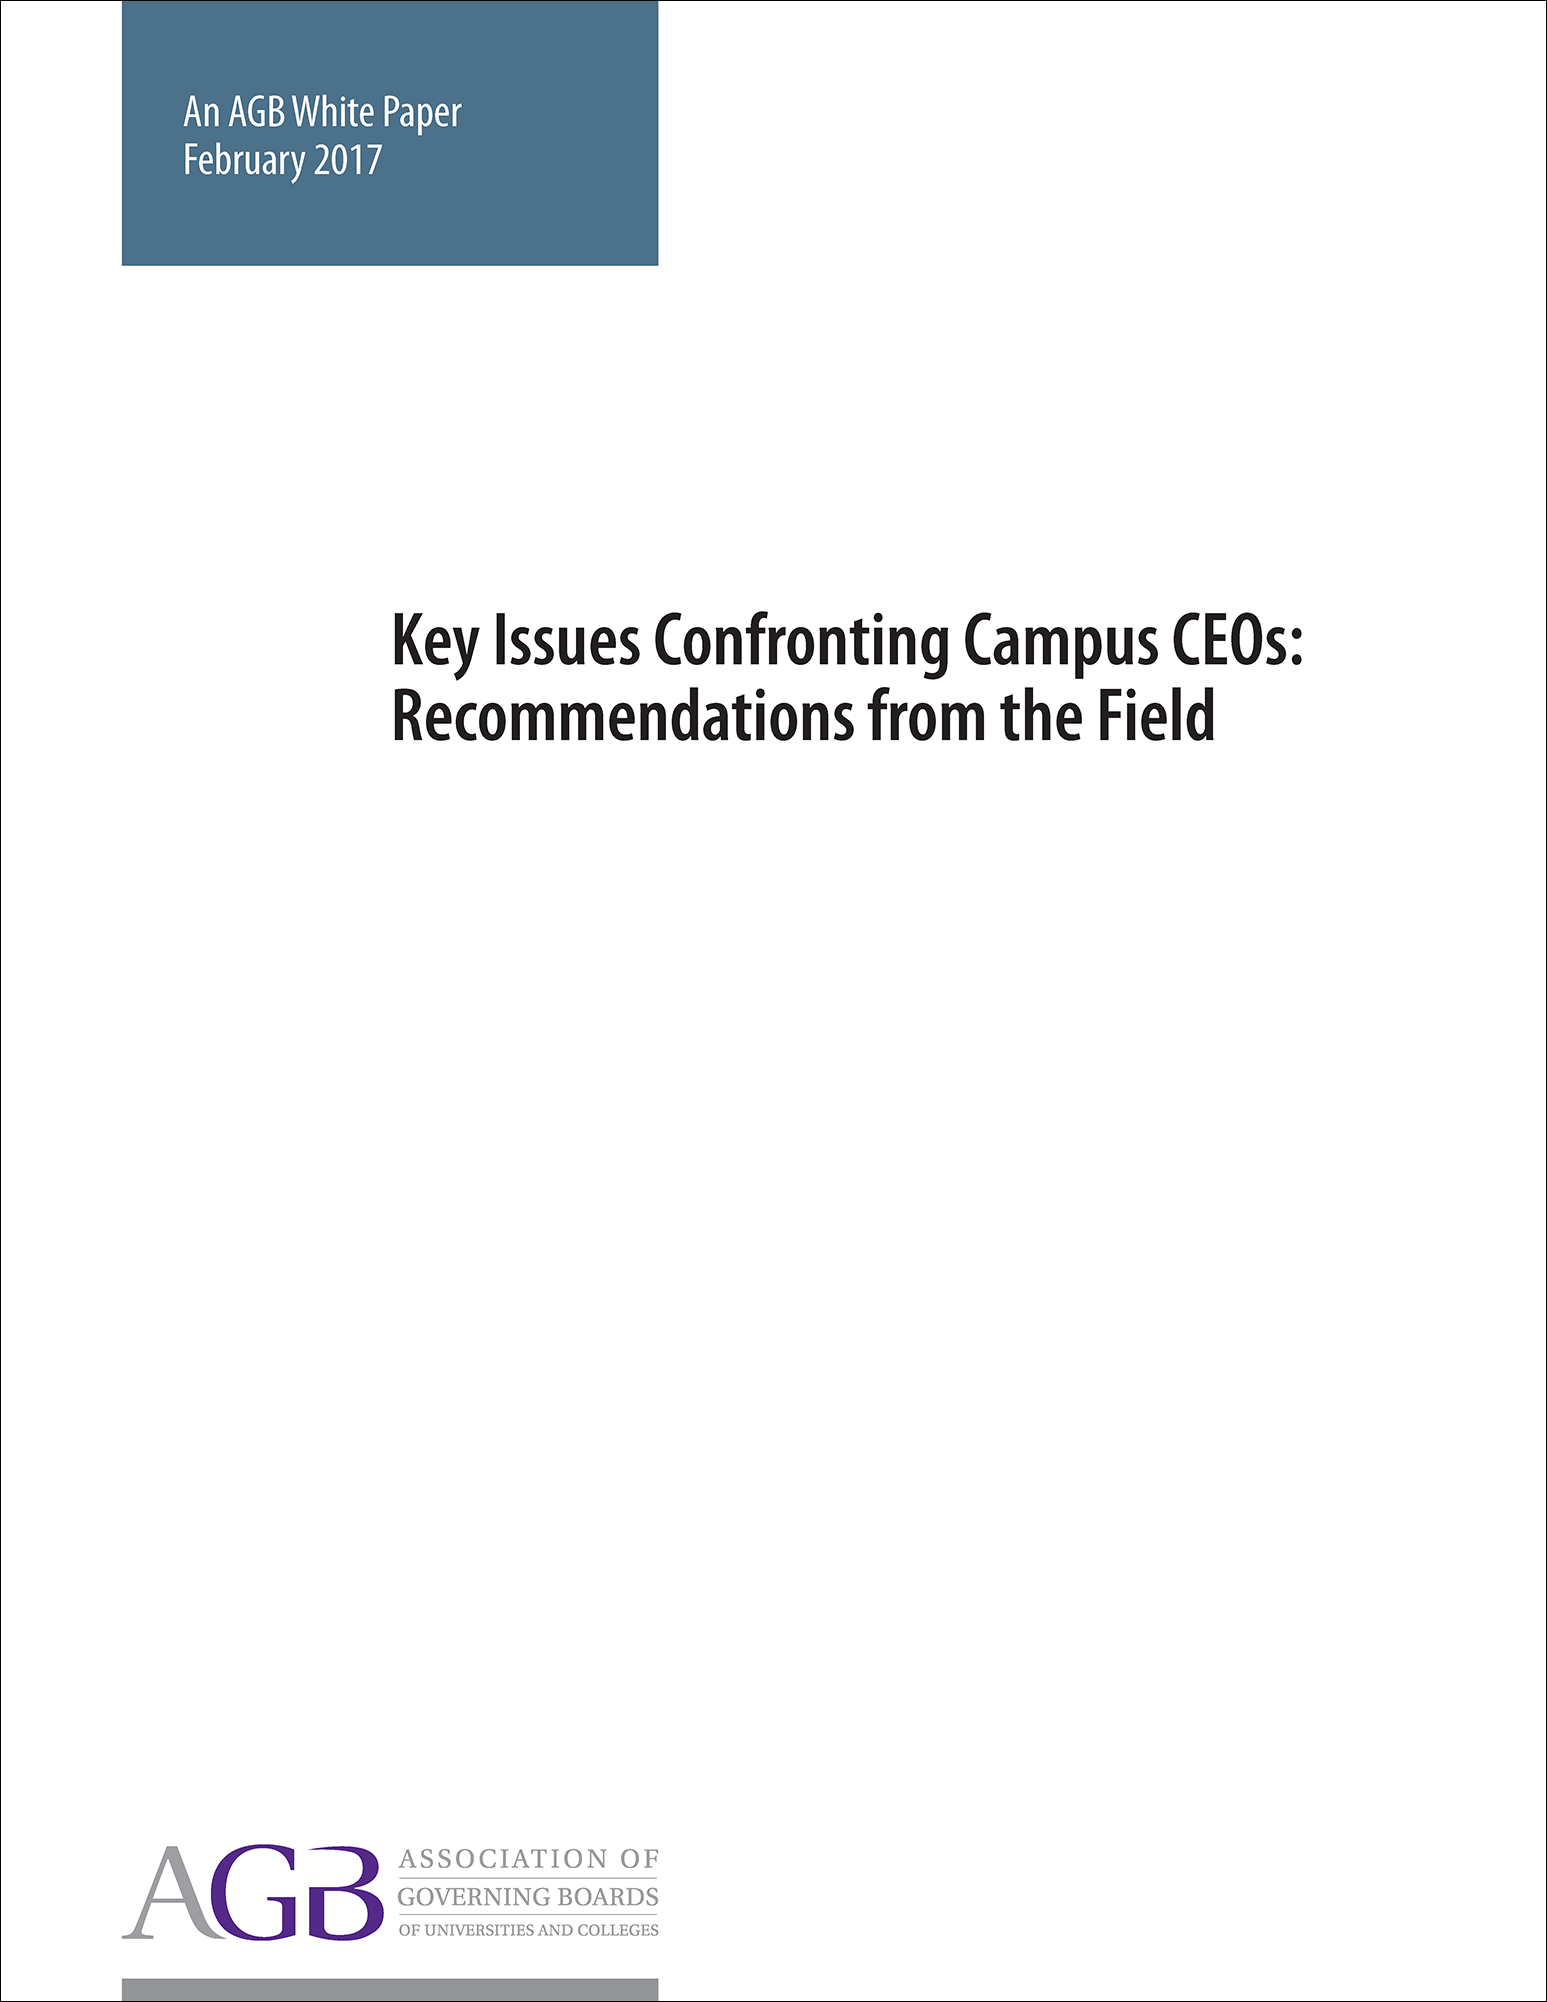 Key Issues Confronting Campus CEOs: Recommendations from the Field